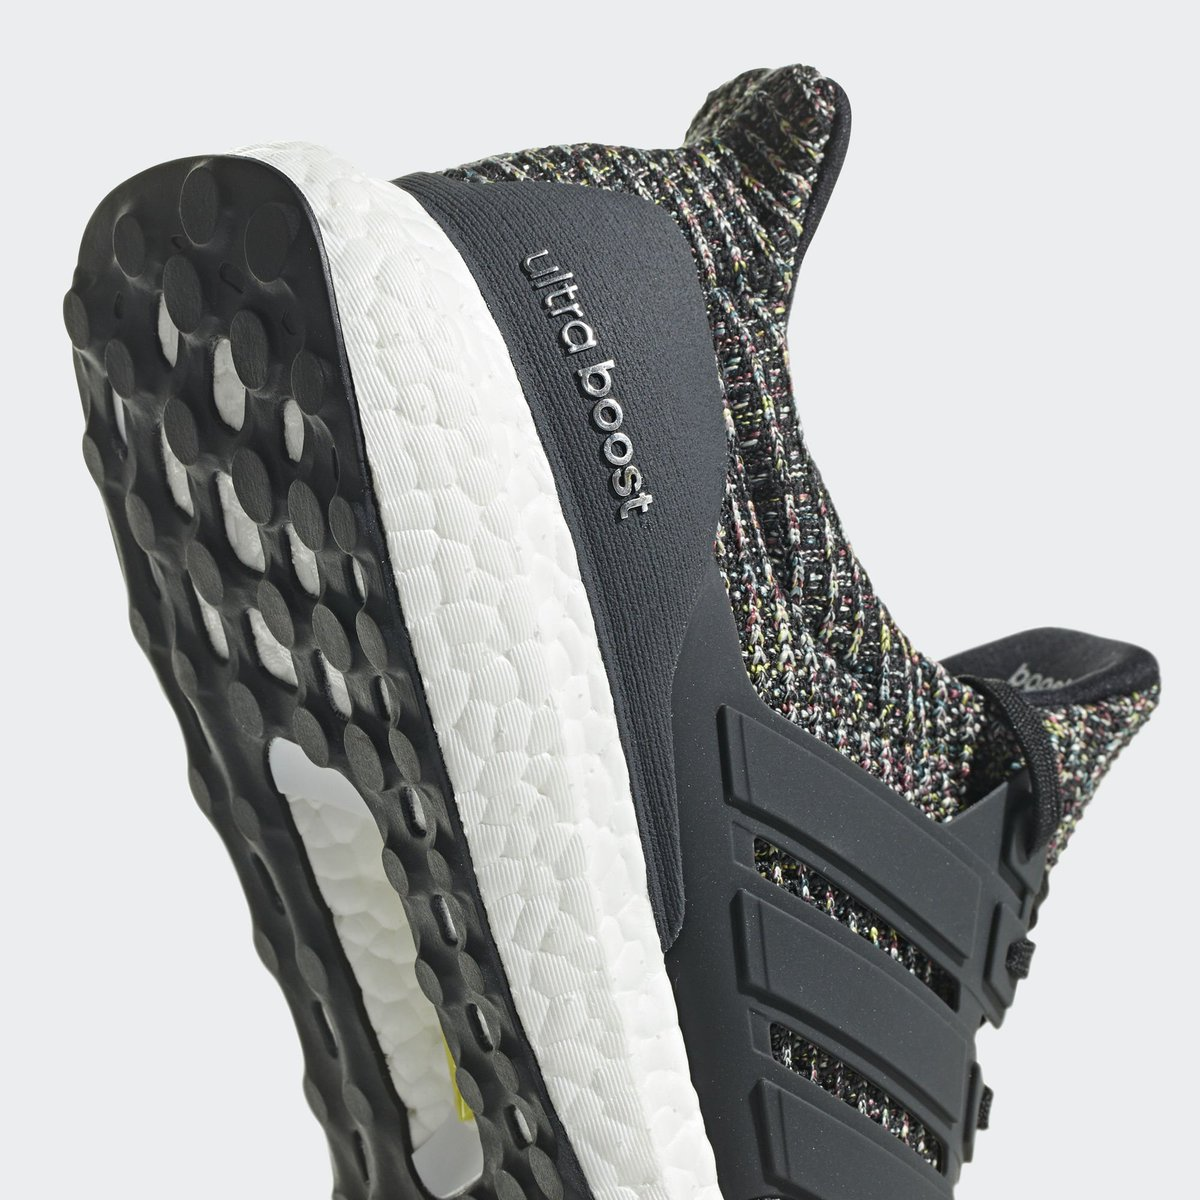 aa0ce400be1f8 adidas alerts on Twitter